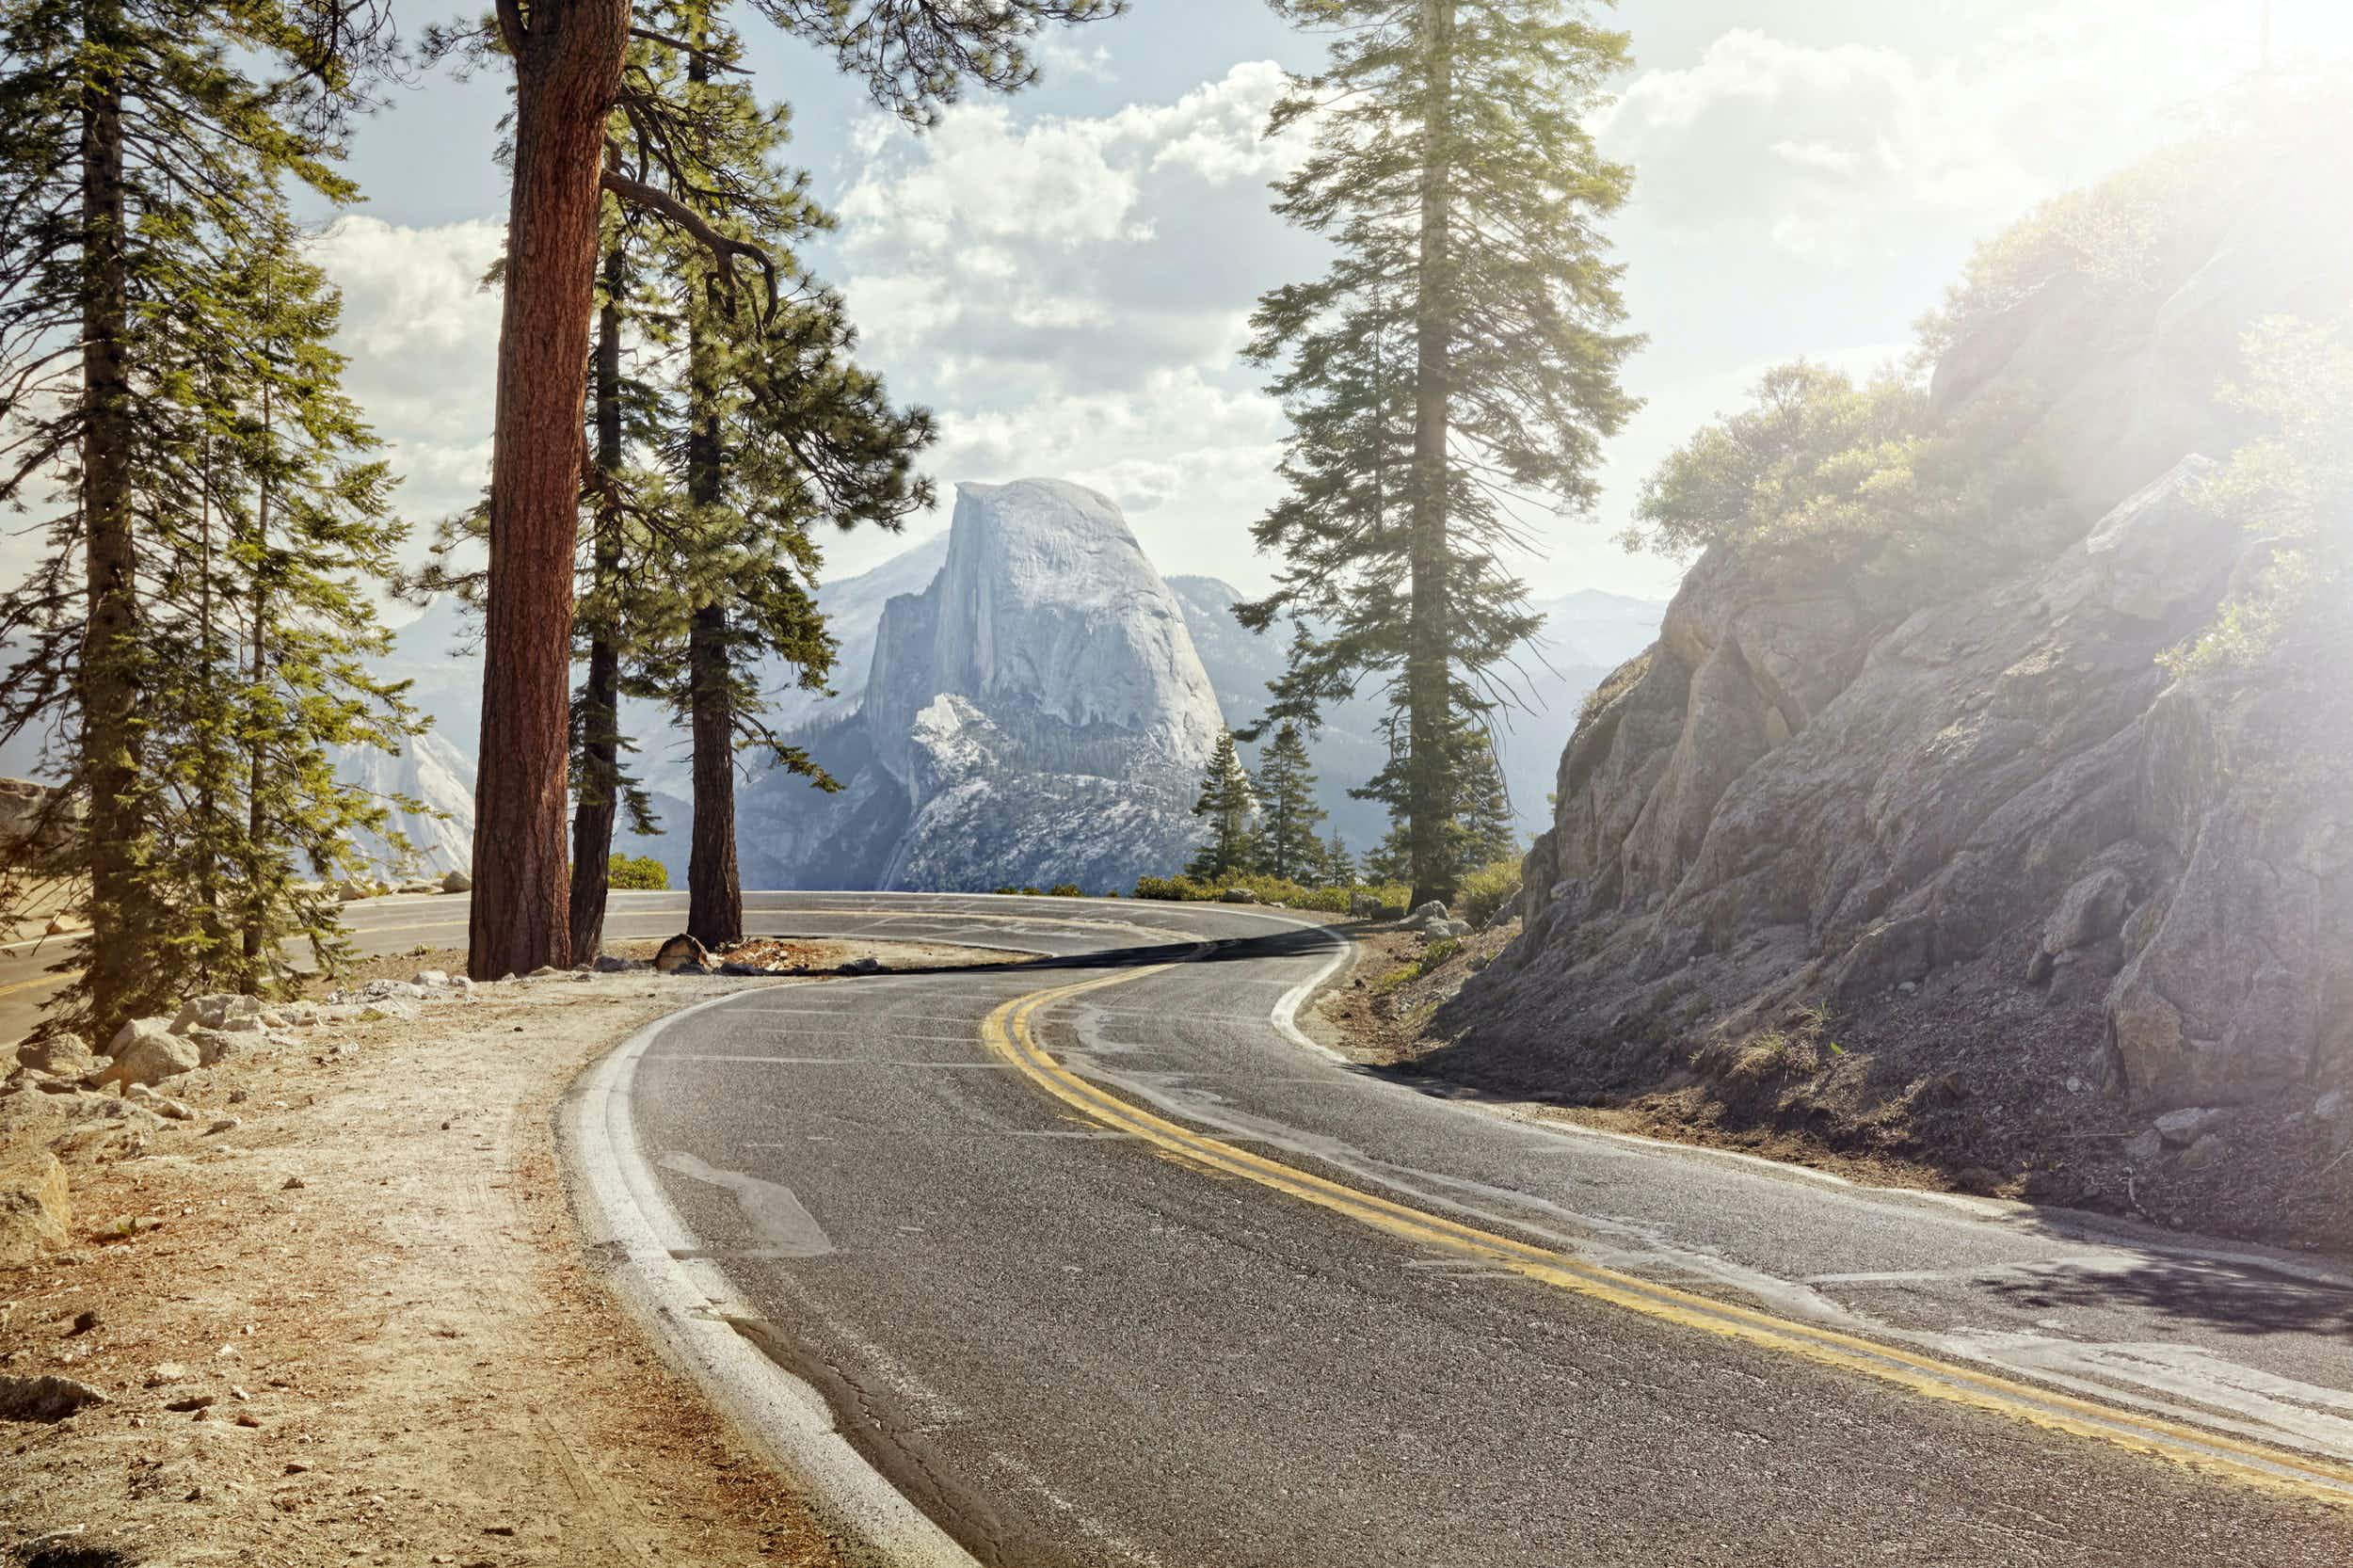 Visit all of California's national parks in one legendary road trip